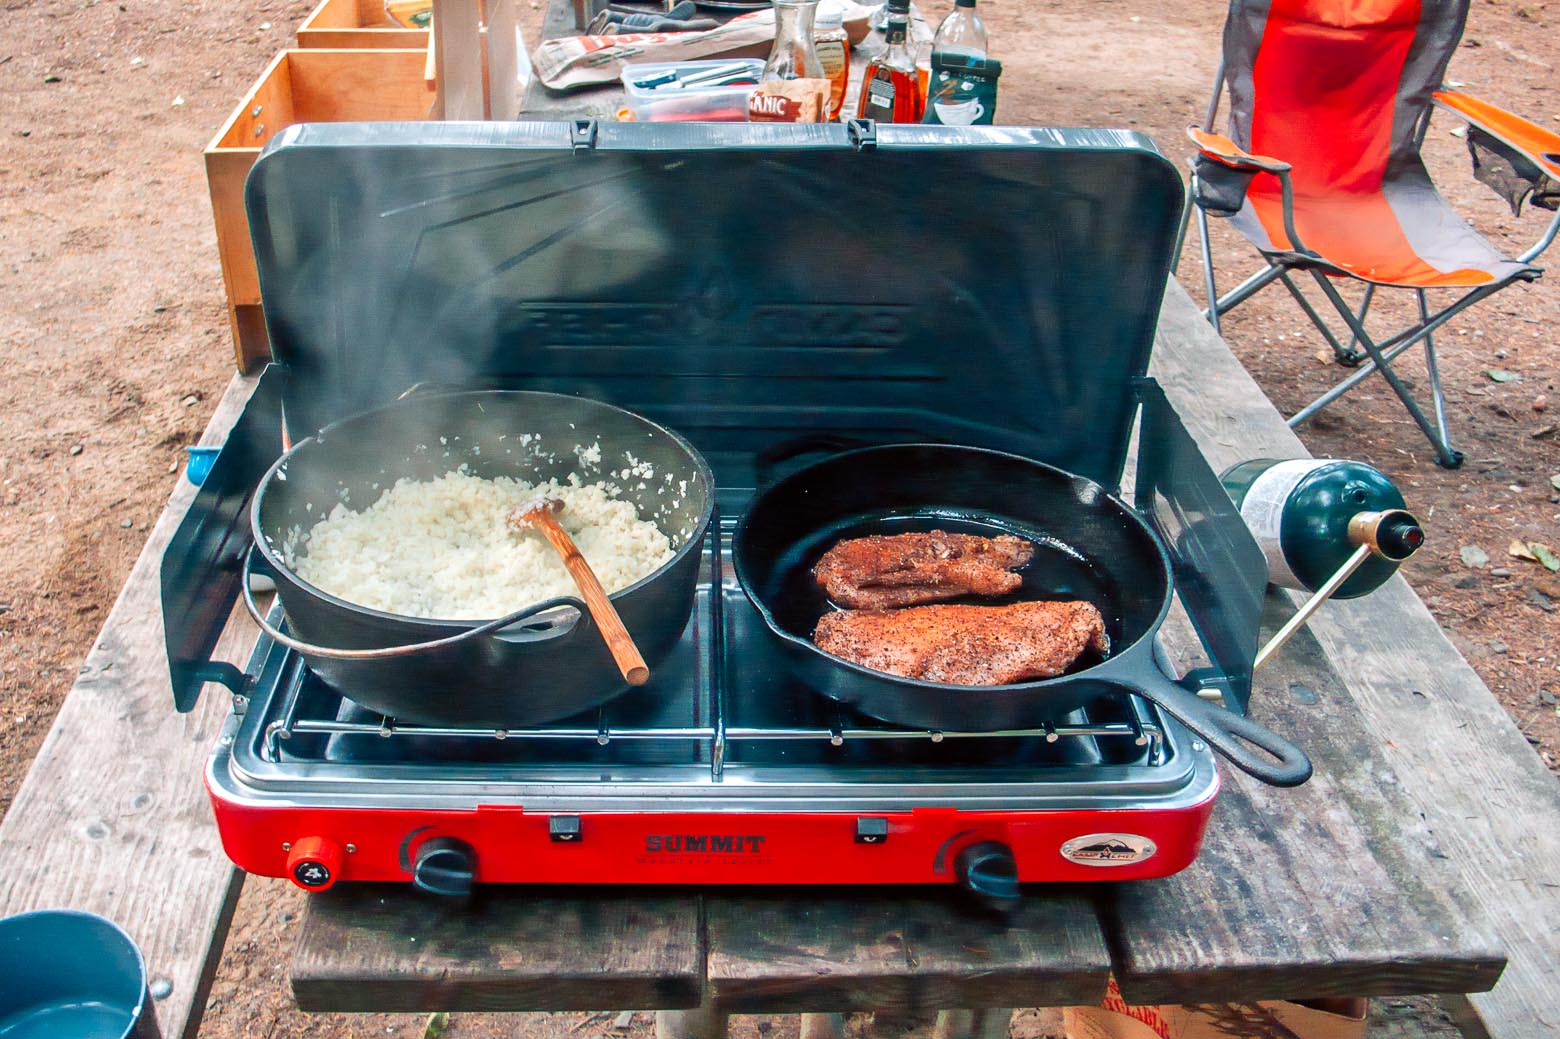 How do you choose the best car camping stove? In this guide we cover everything